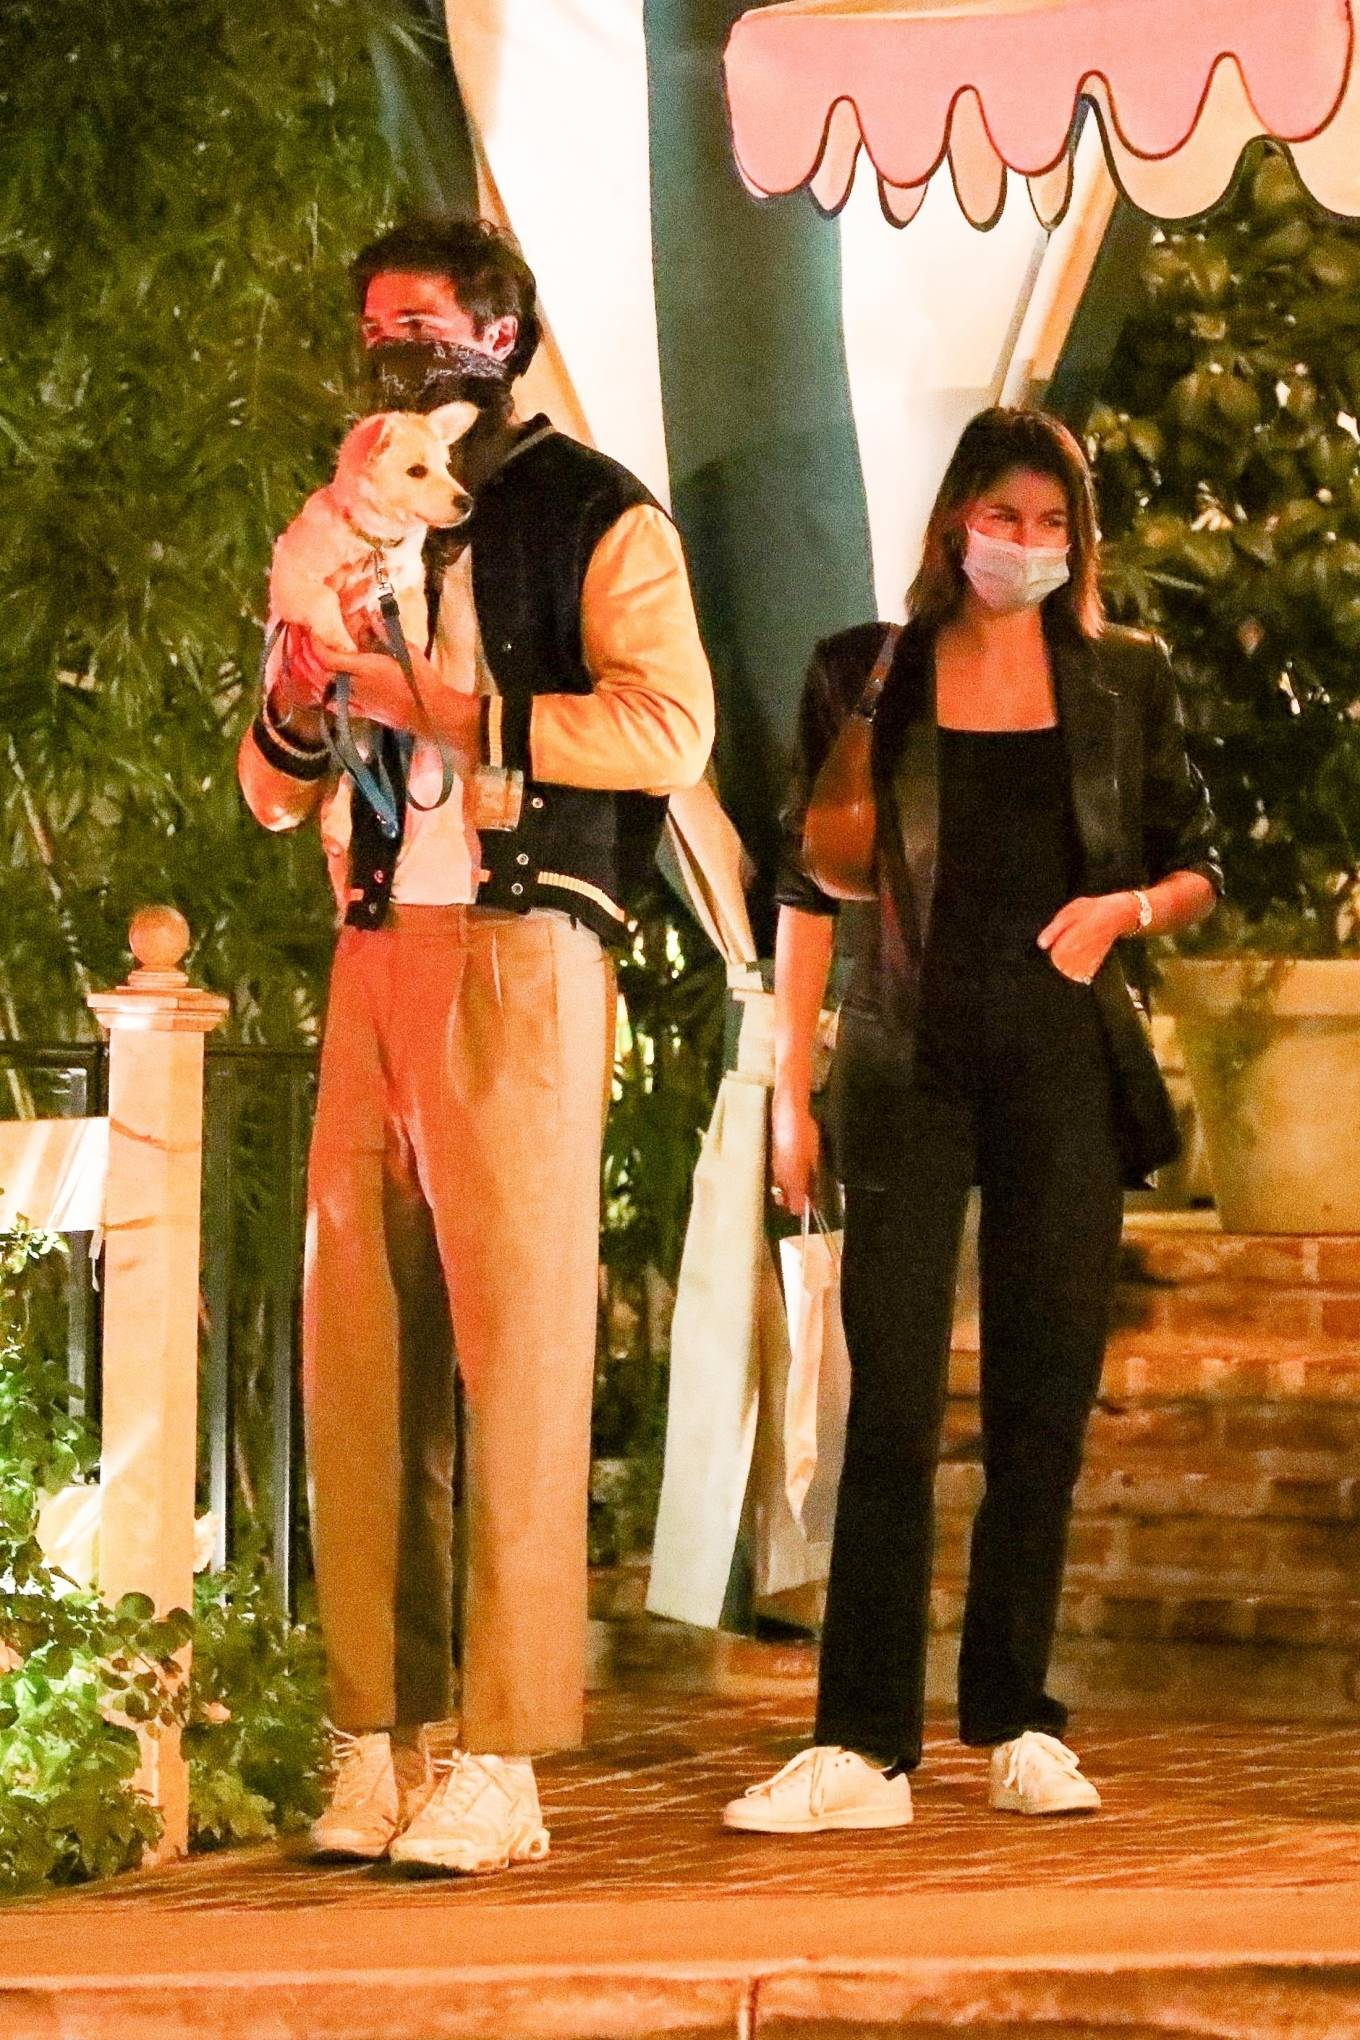 Kaia Gerber and Jacob Elordi - Seen at the San Vicente Bungalows in West Hollywood